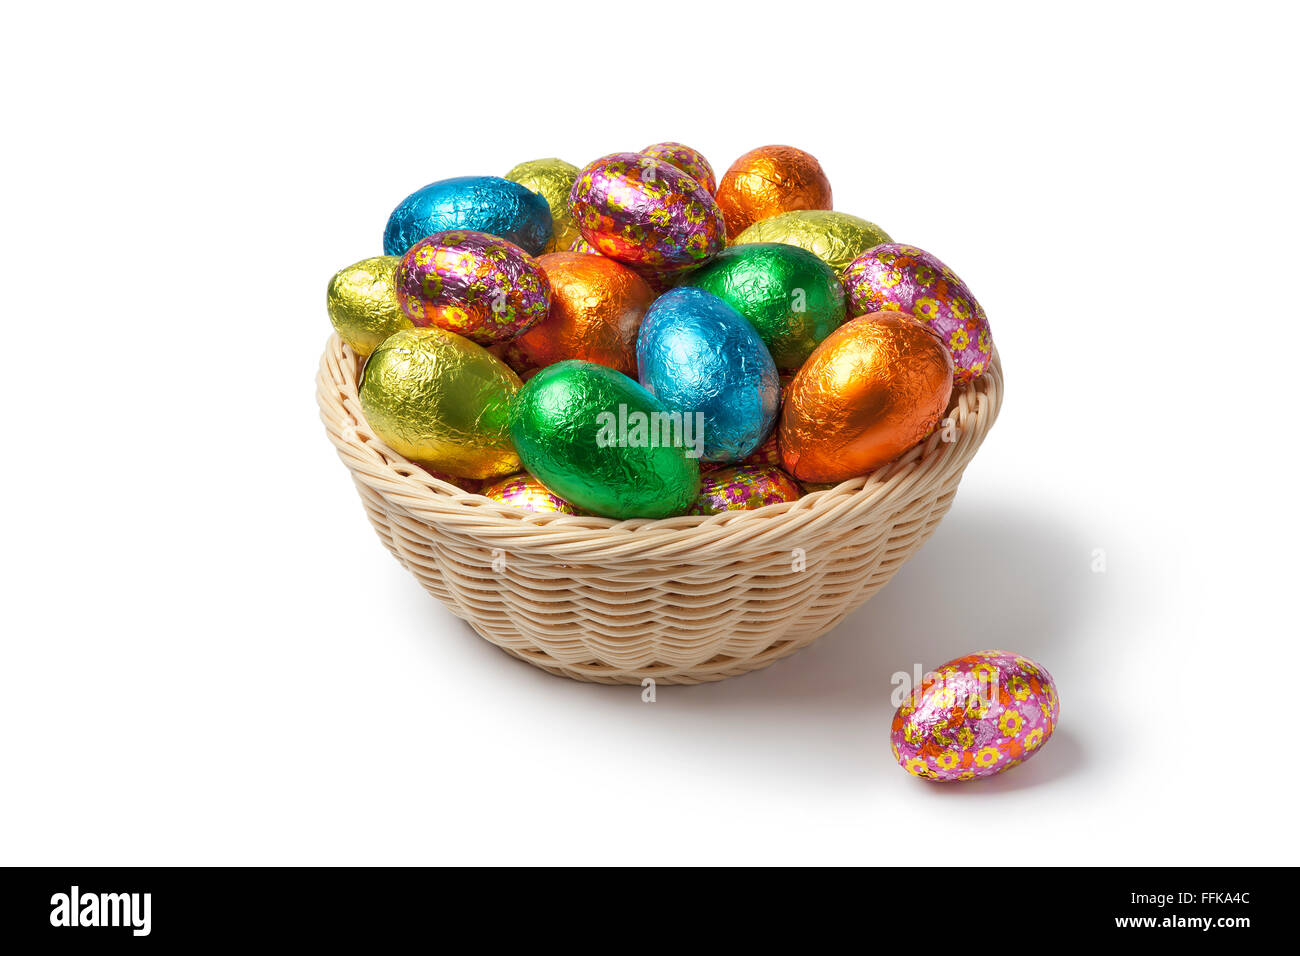 Chocolate Easter eggs in colored foil in a basket - Stock Image